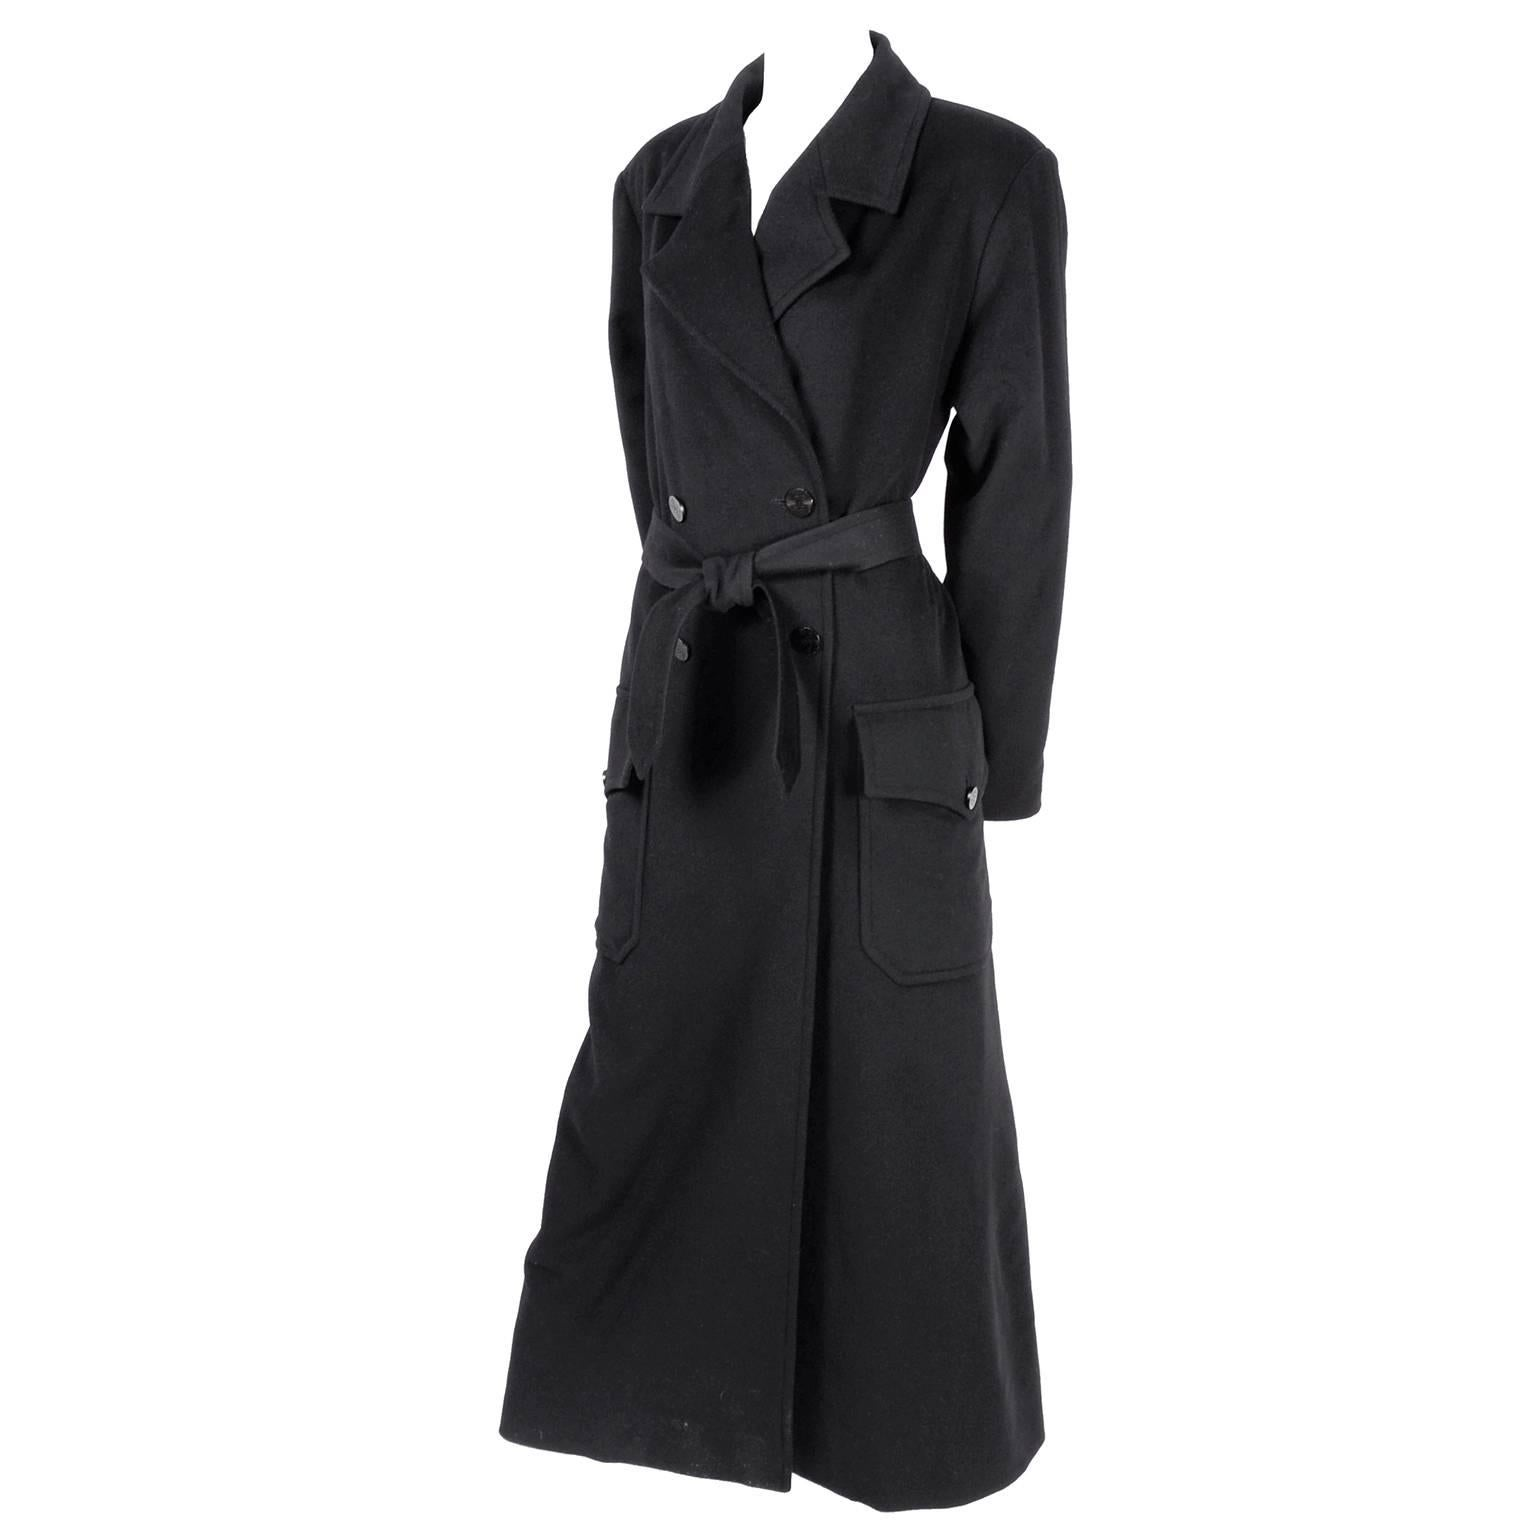 Chanel Wool and Cashmere Coat with CC Monogram Buttons, 1998